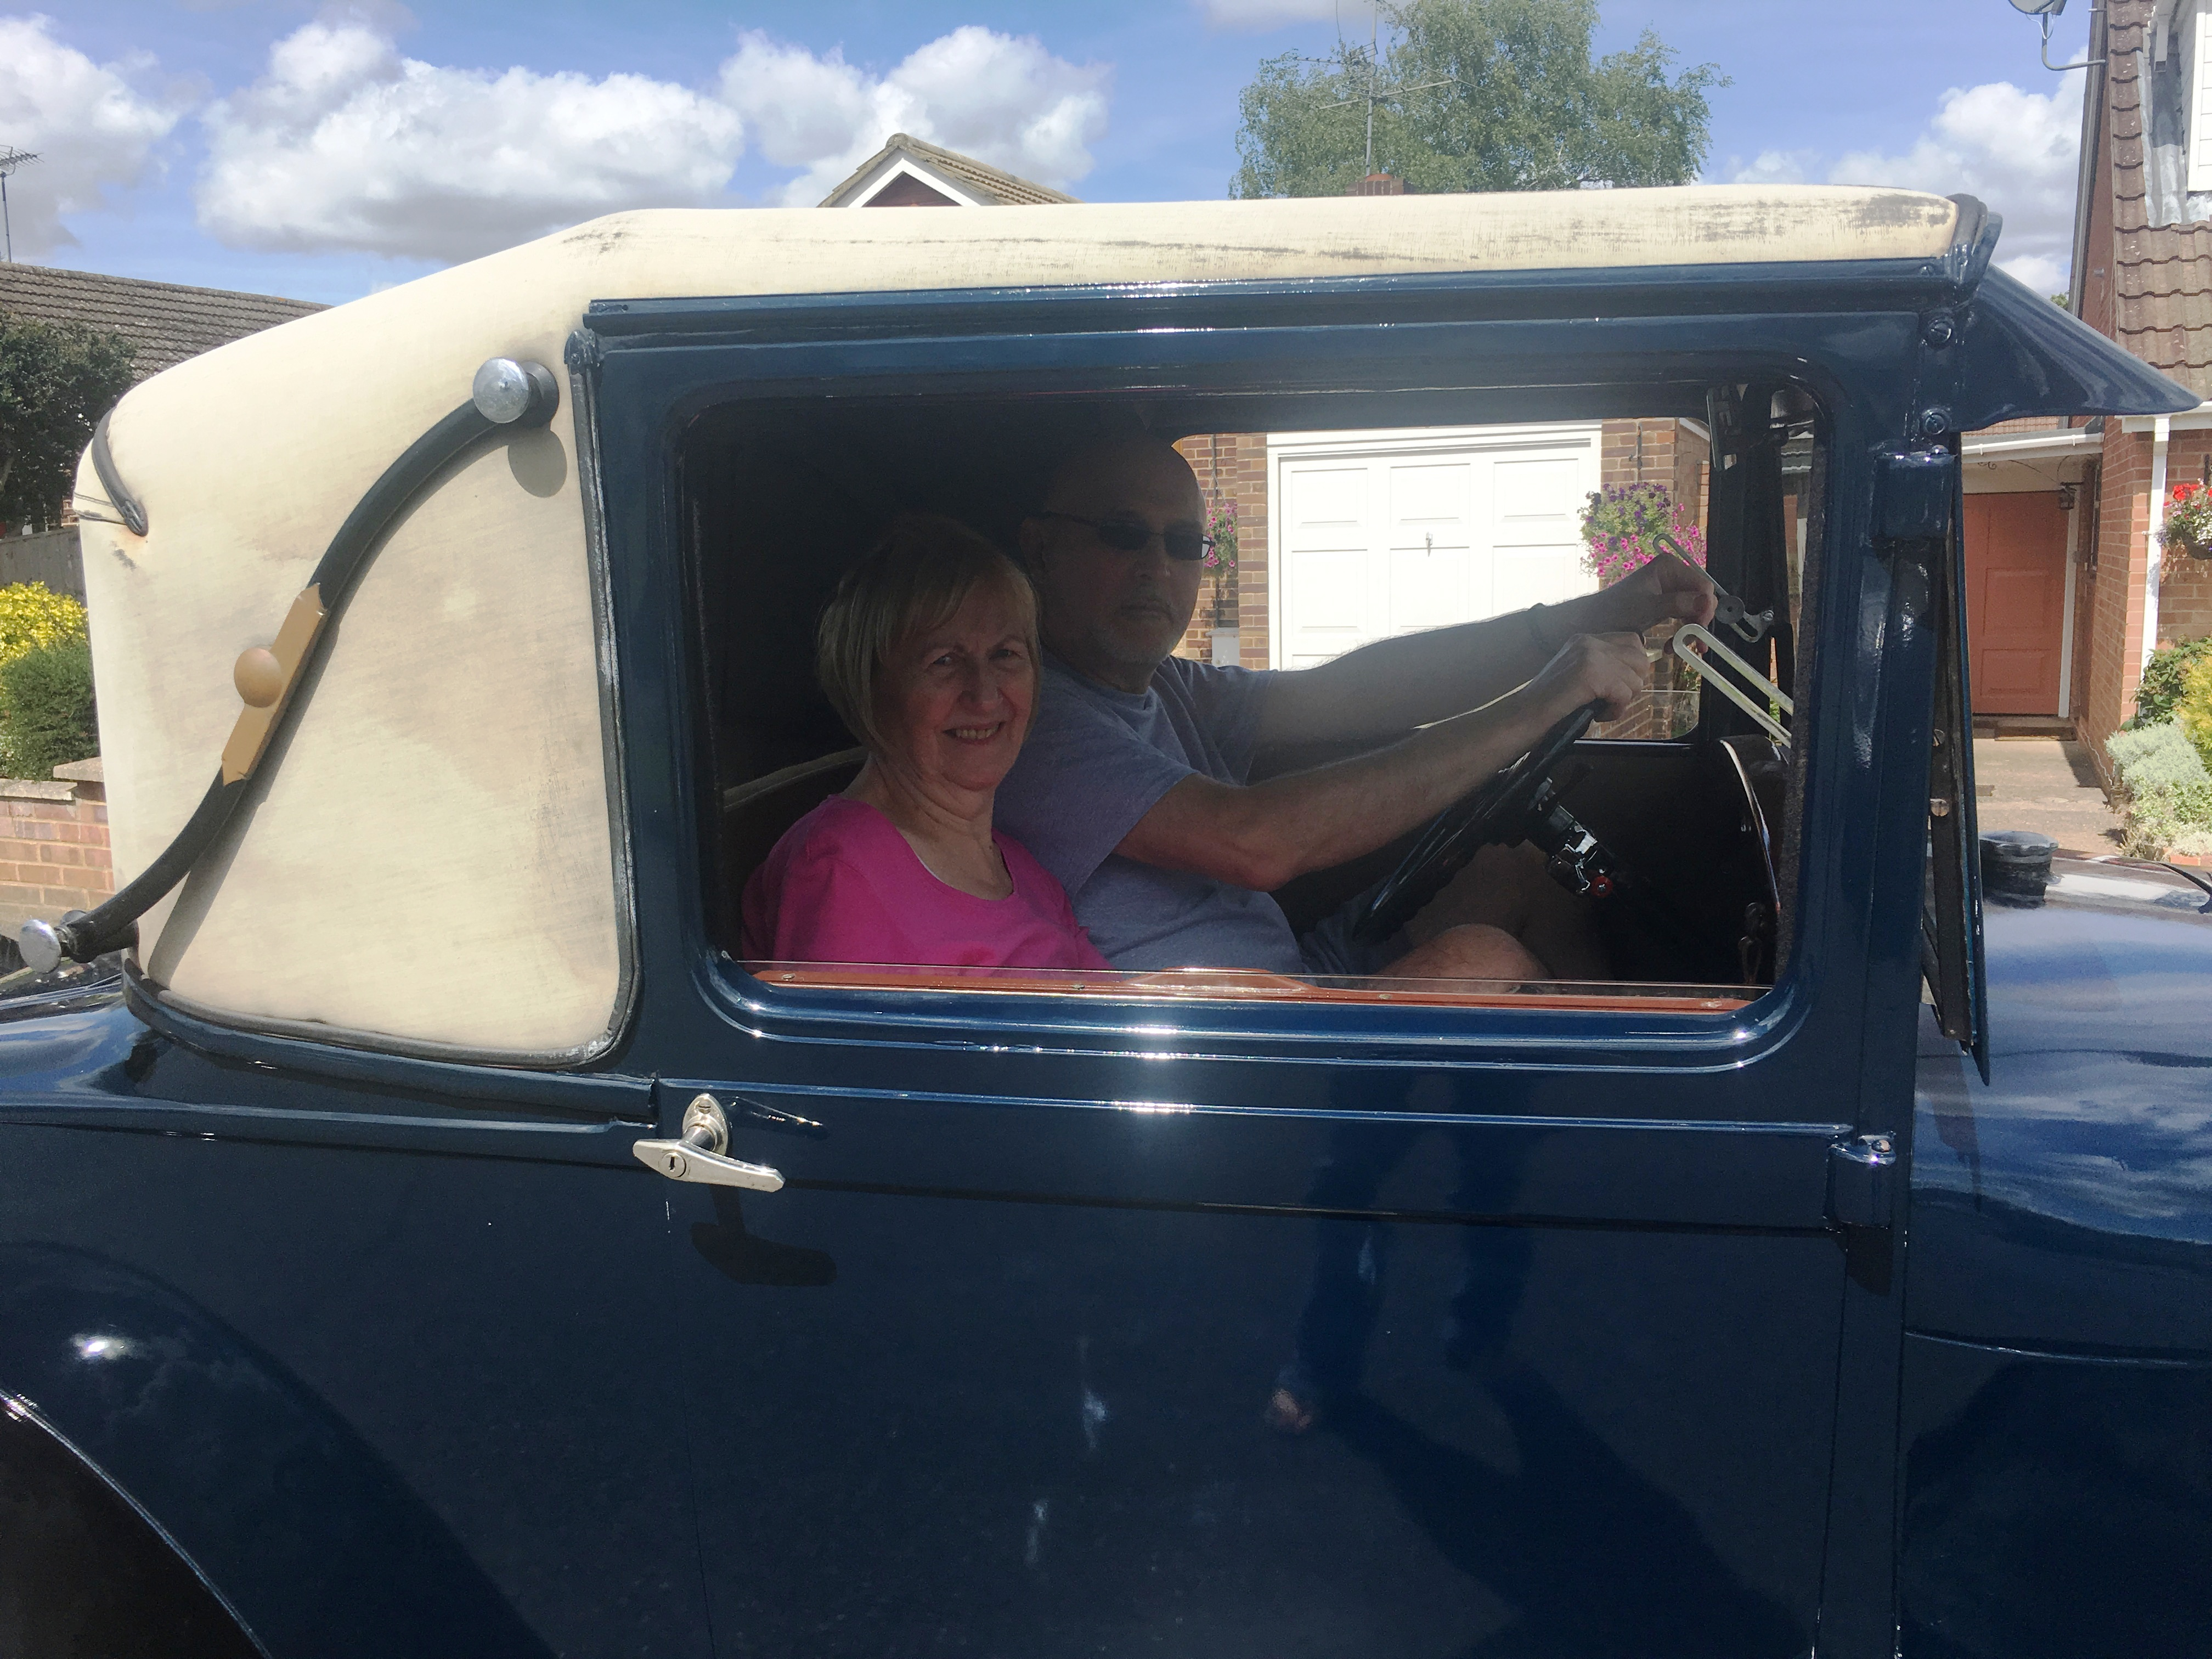 Noreen and the Model A